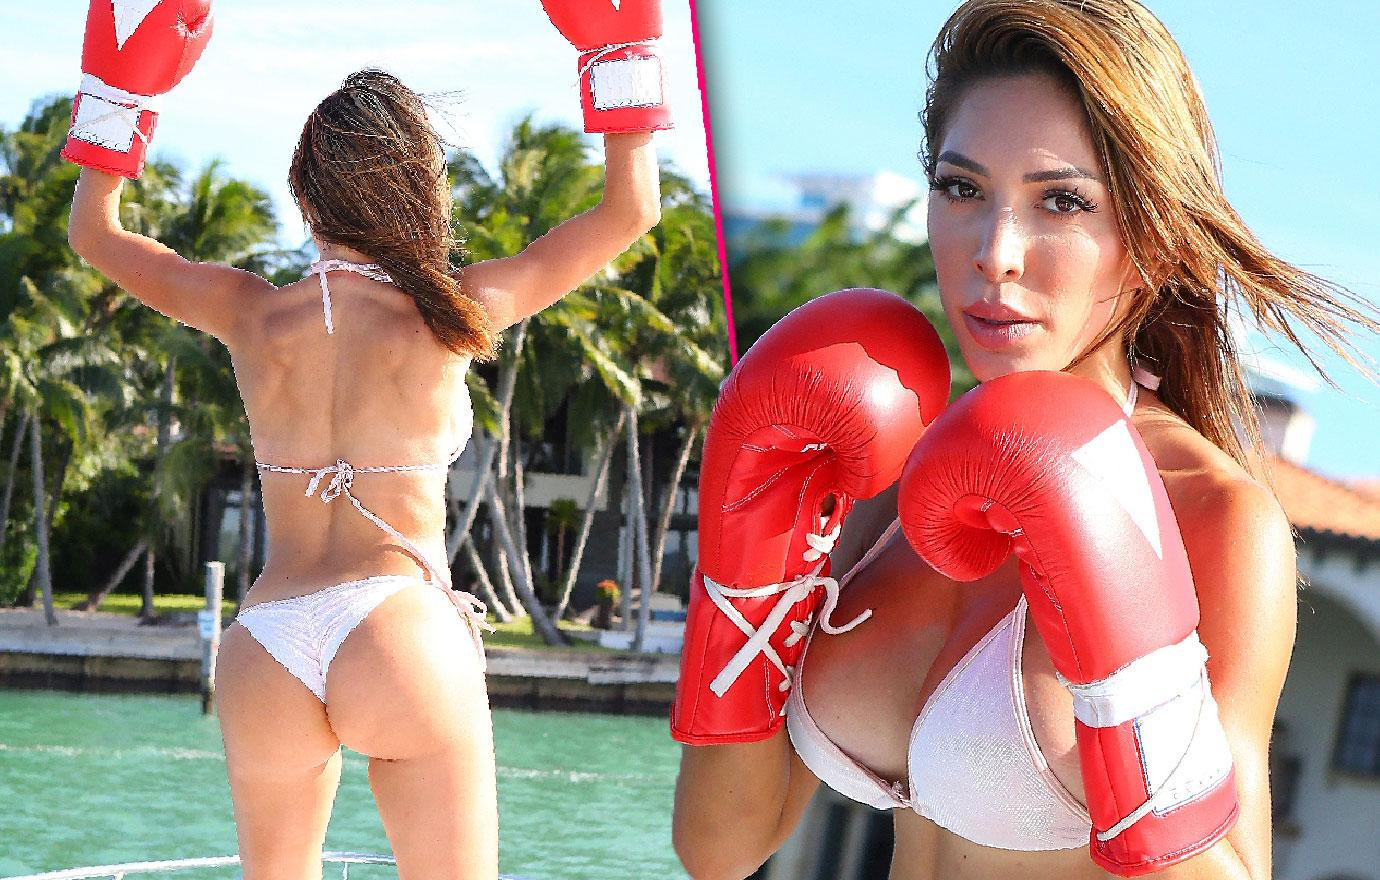 Farrah Abraham Threatened With Lawsuit Over Boxing Match